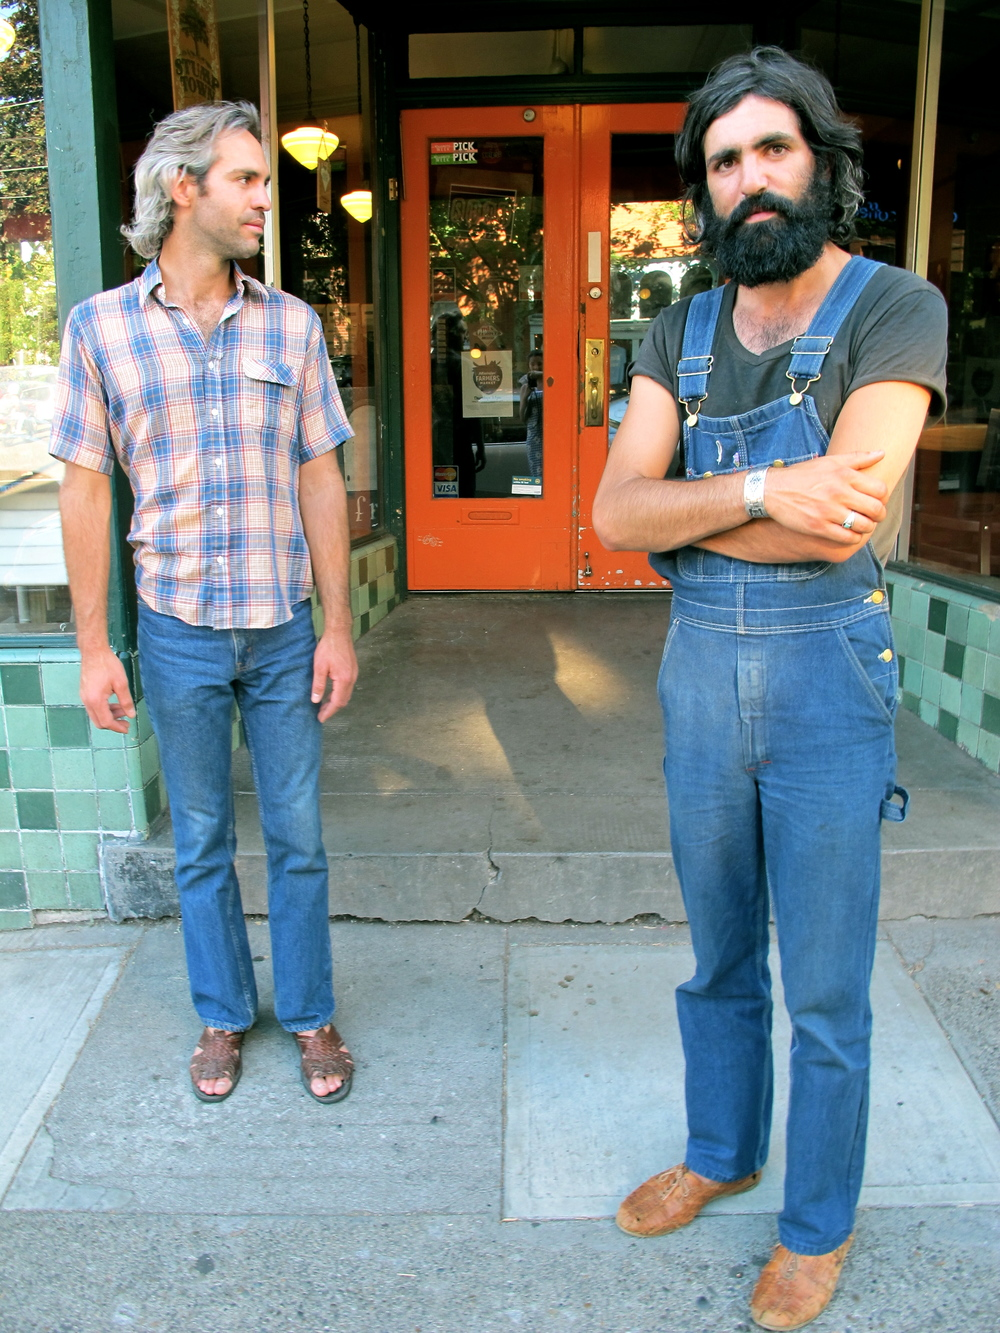 Visiting from California, these two dawn a look that is almost Eurpoean. A man in overalls? Any day.